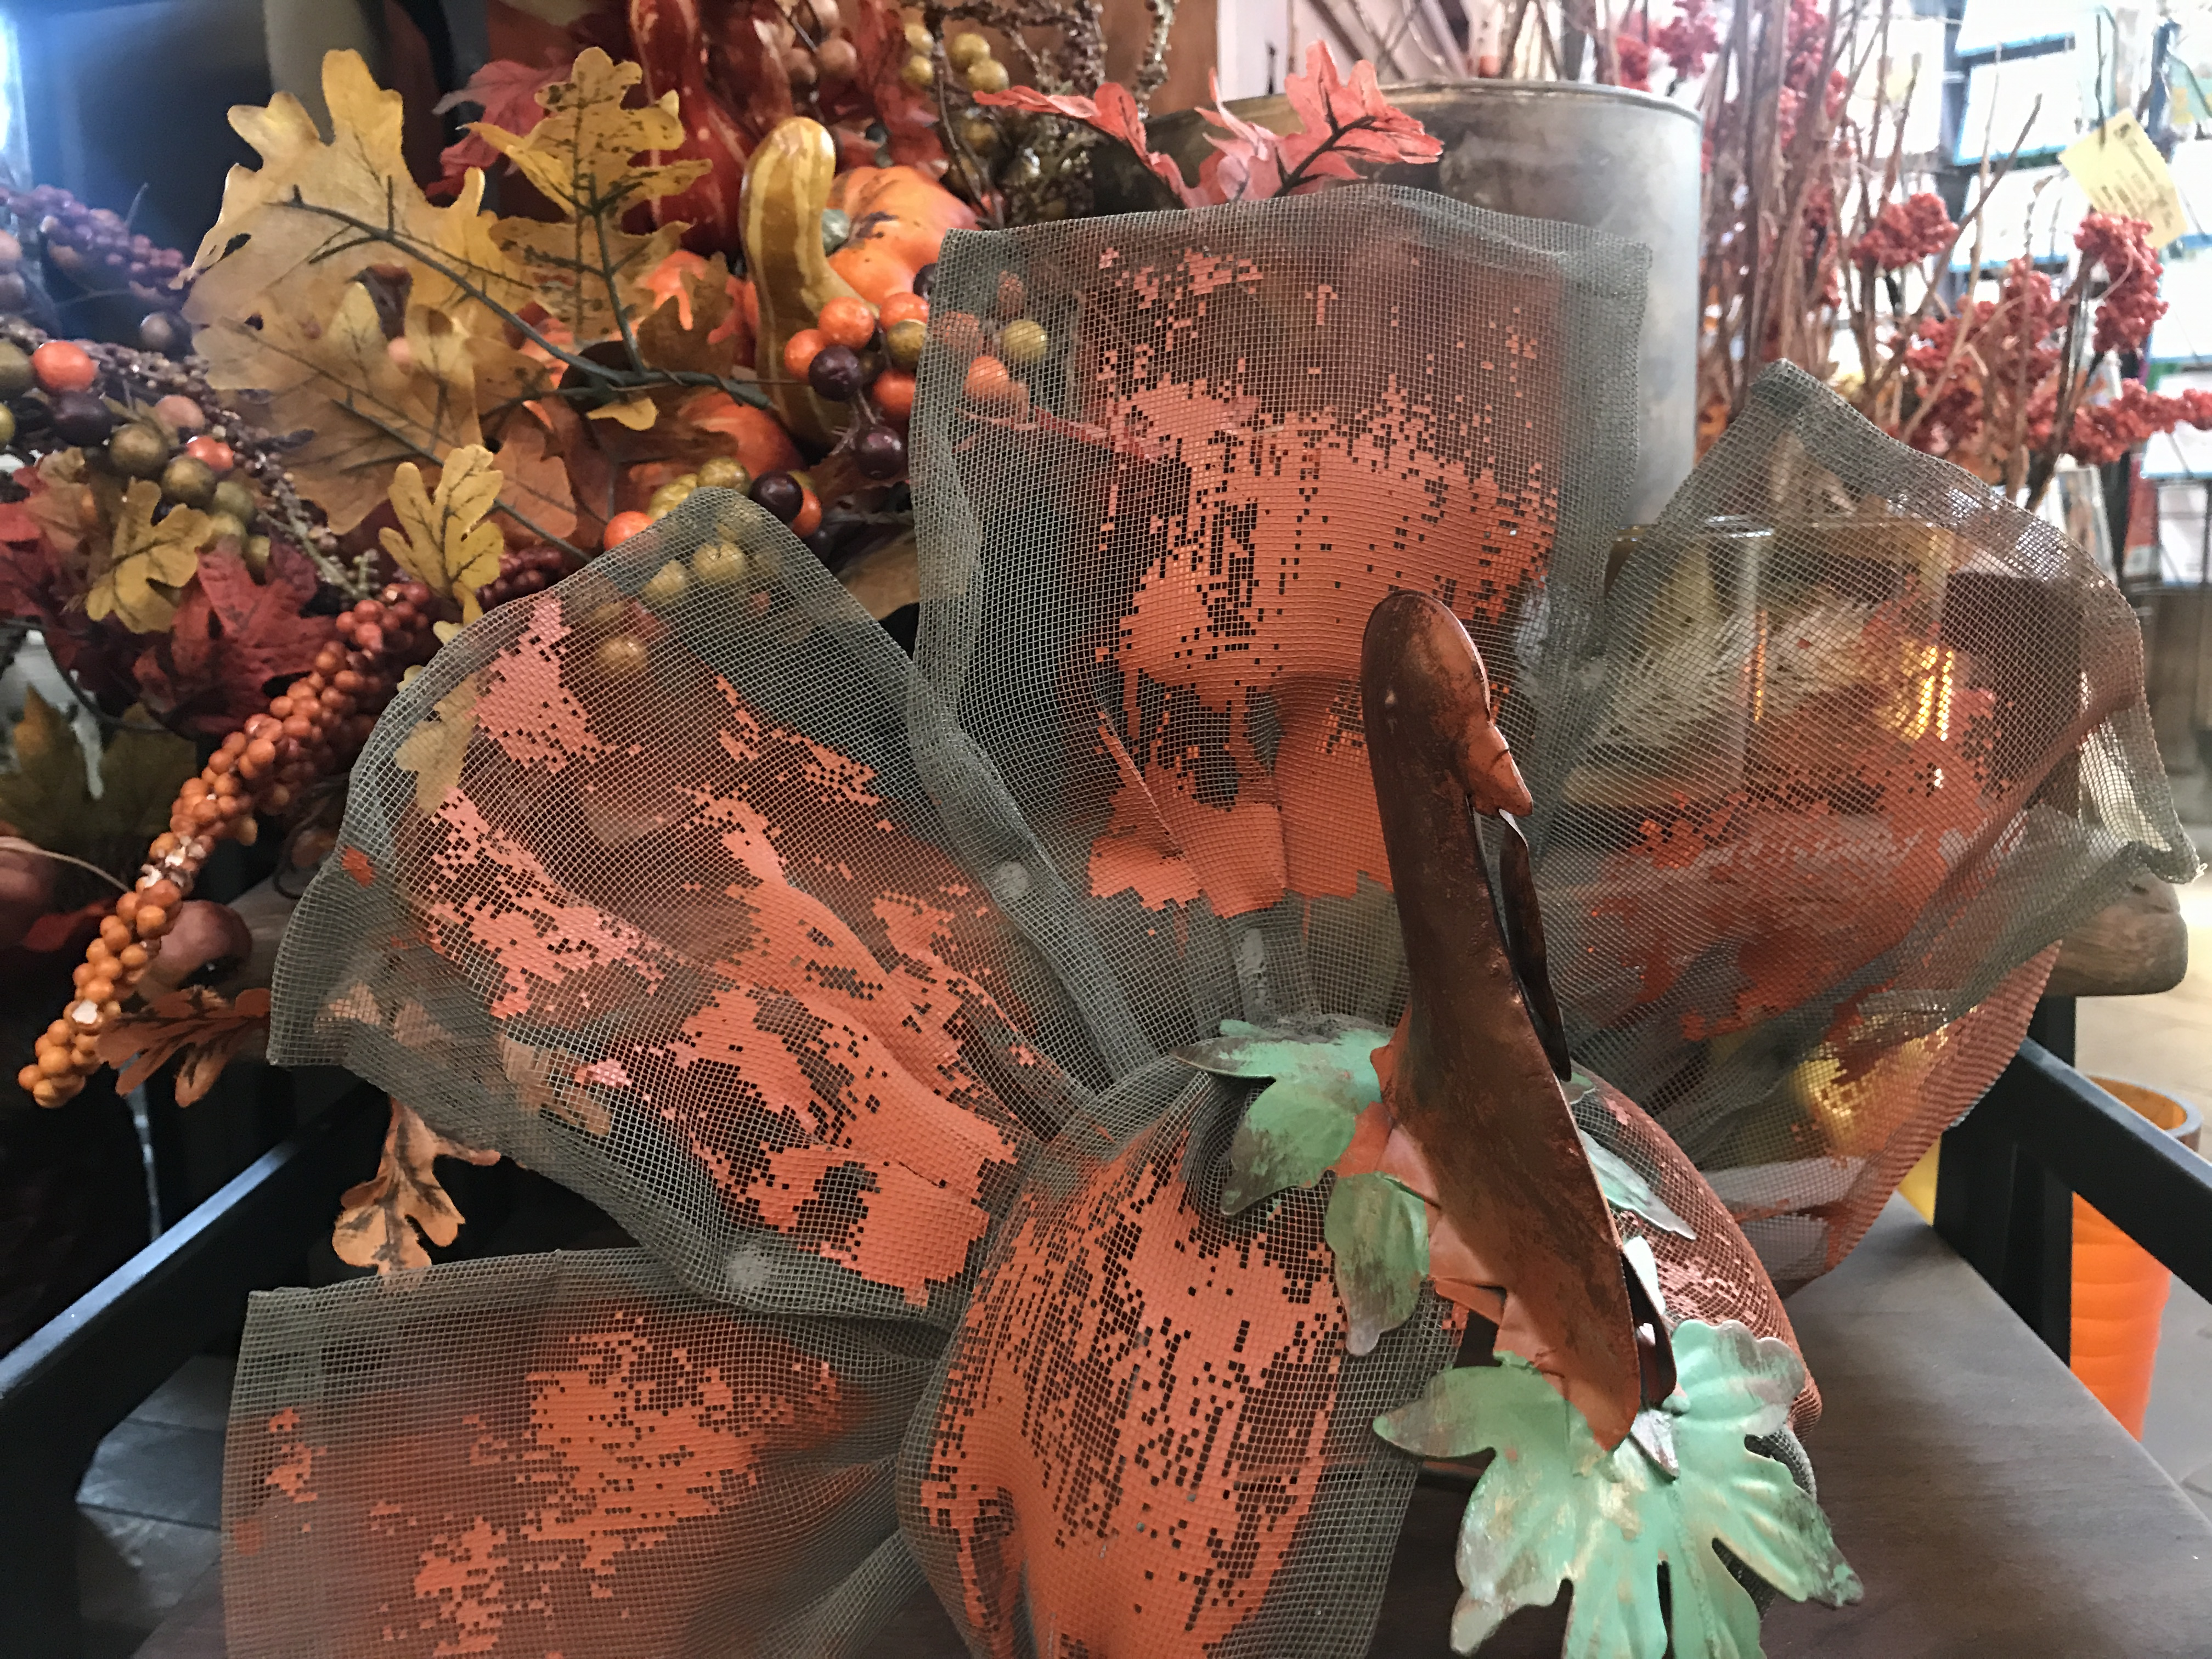 Thanksgiving and fall season decoration at City Floral greenhouse and garden center